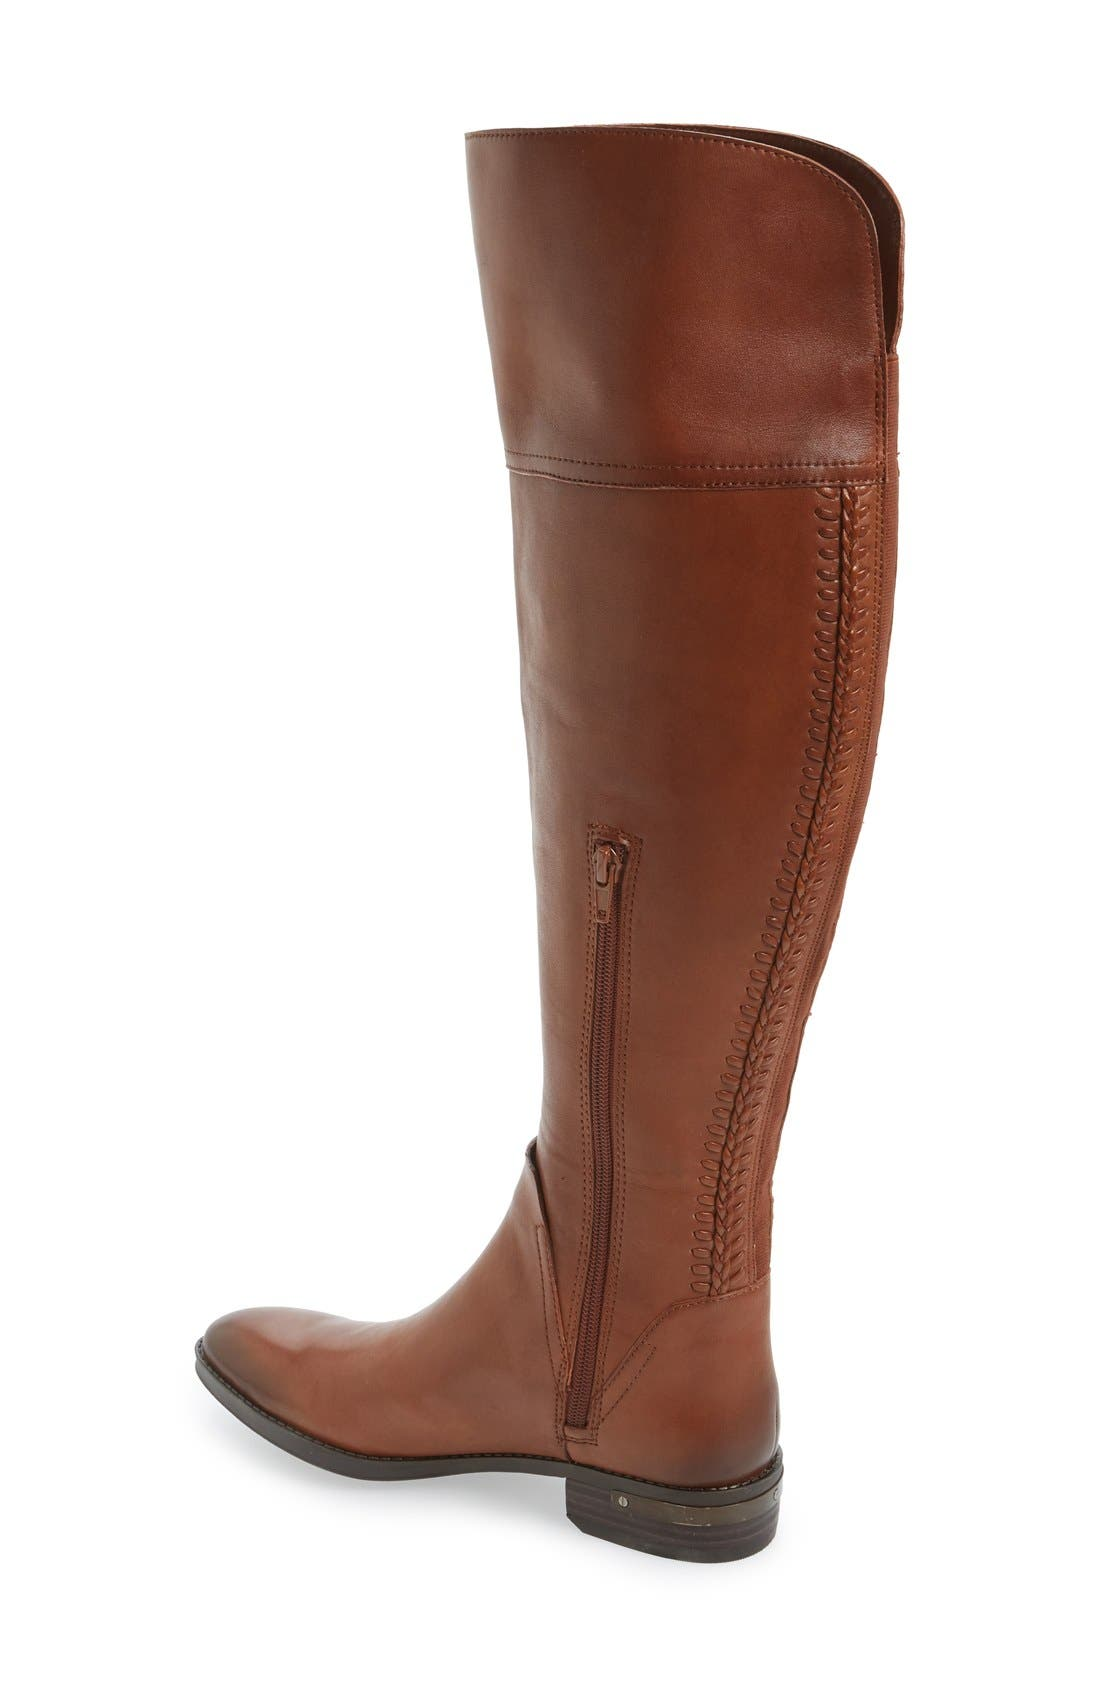 Alternate Image 2  - Vince Camuto 'Pedra' Over the Knee Boot (Women)